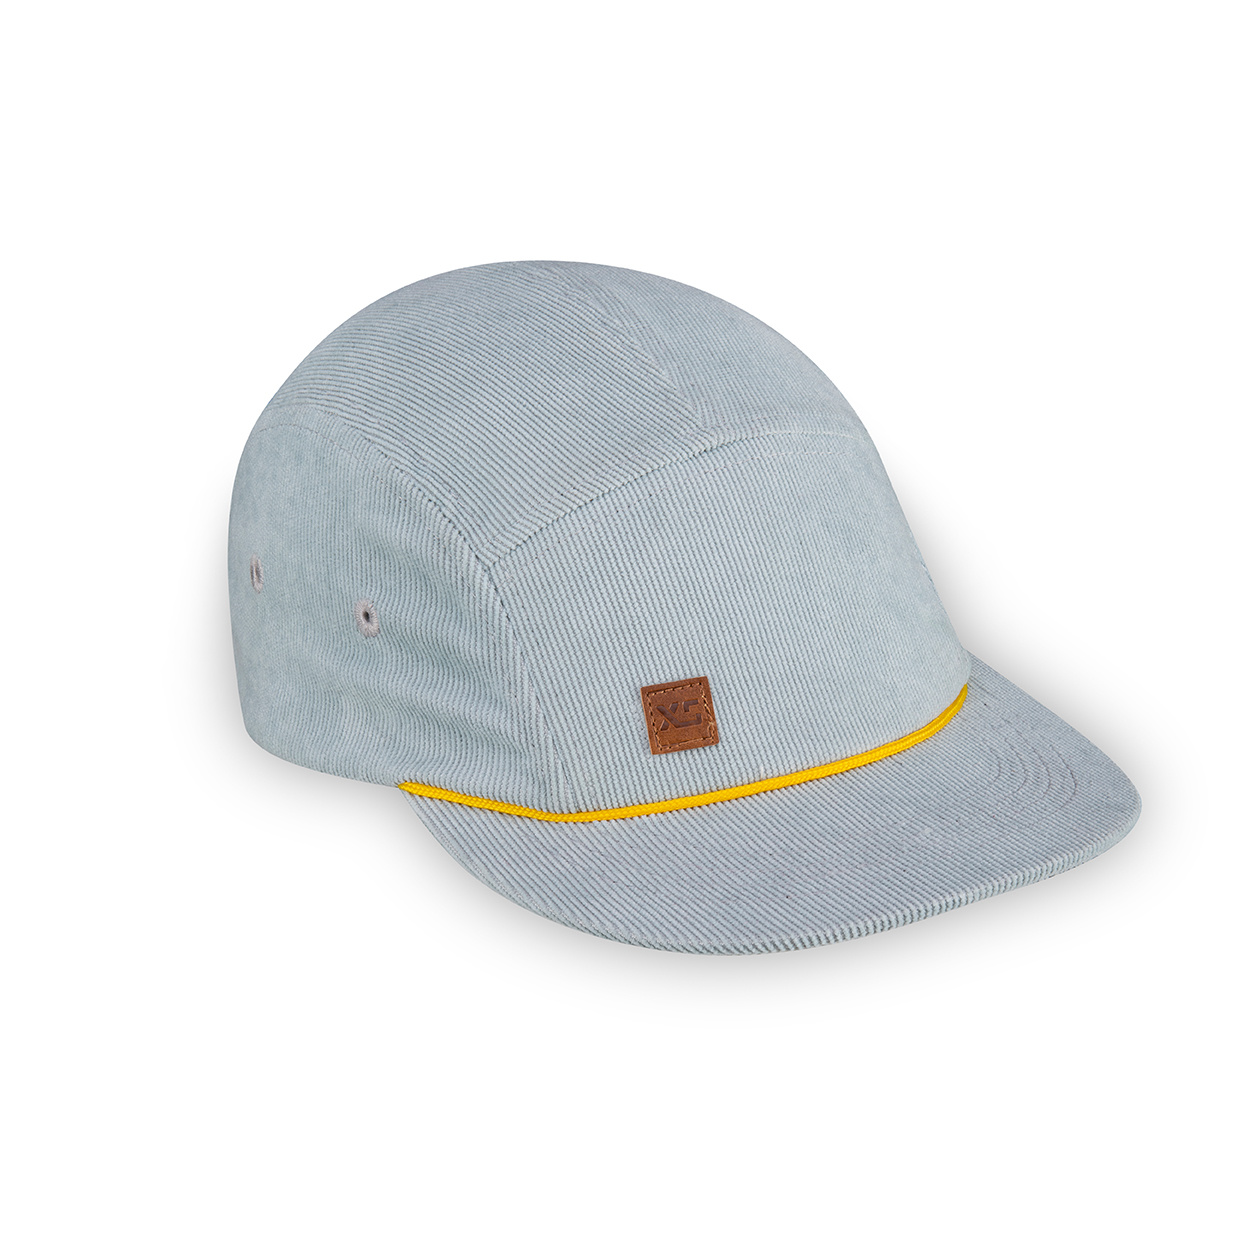 XS Unified XS Unified Kid's 5 Panel Hat Blue Corduroy